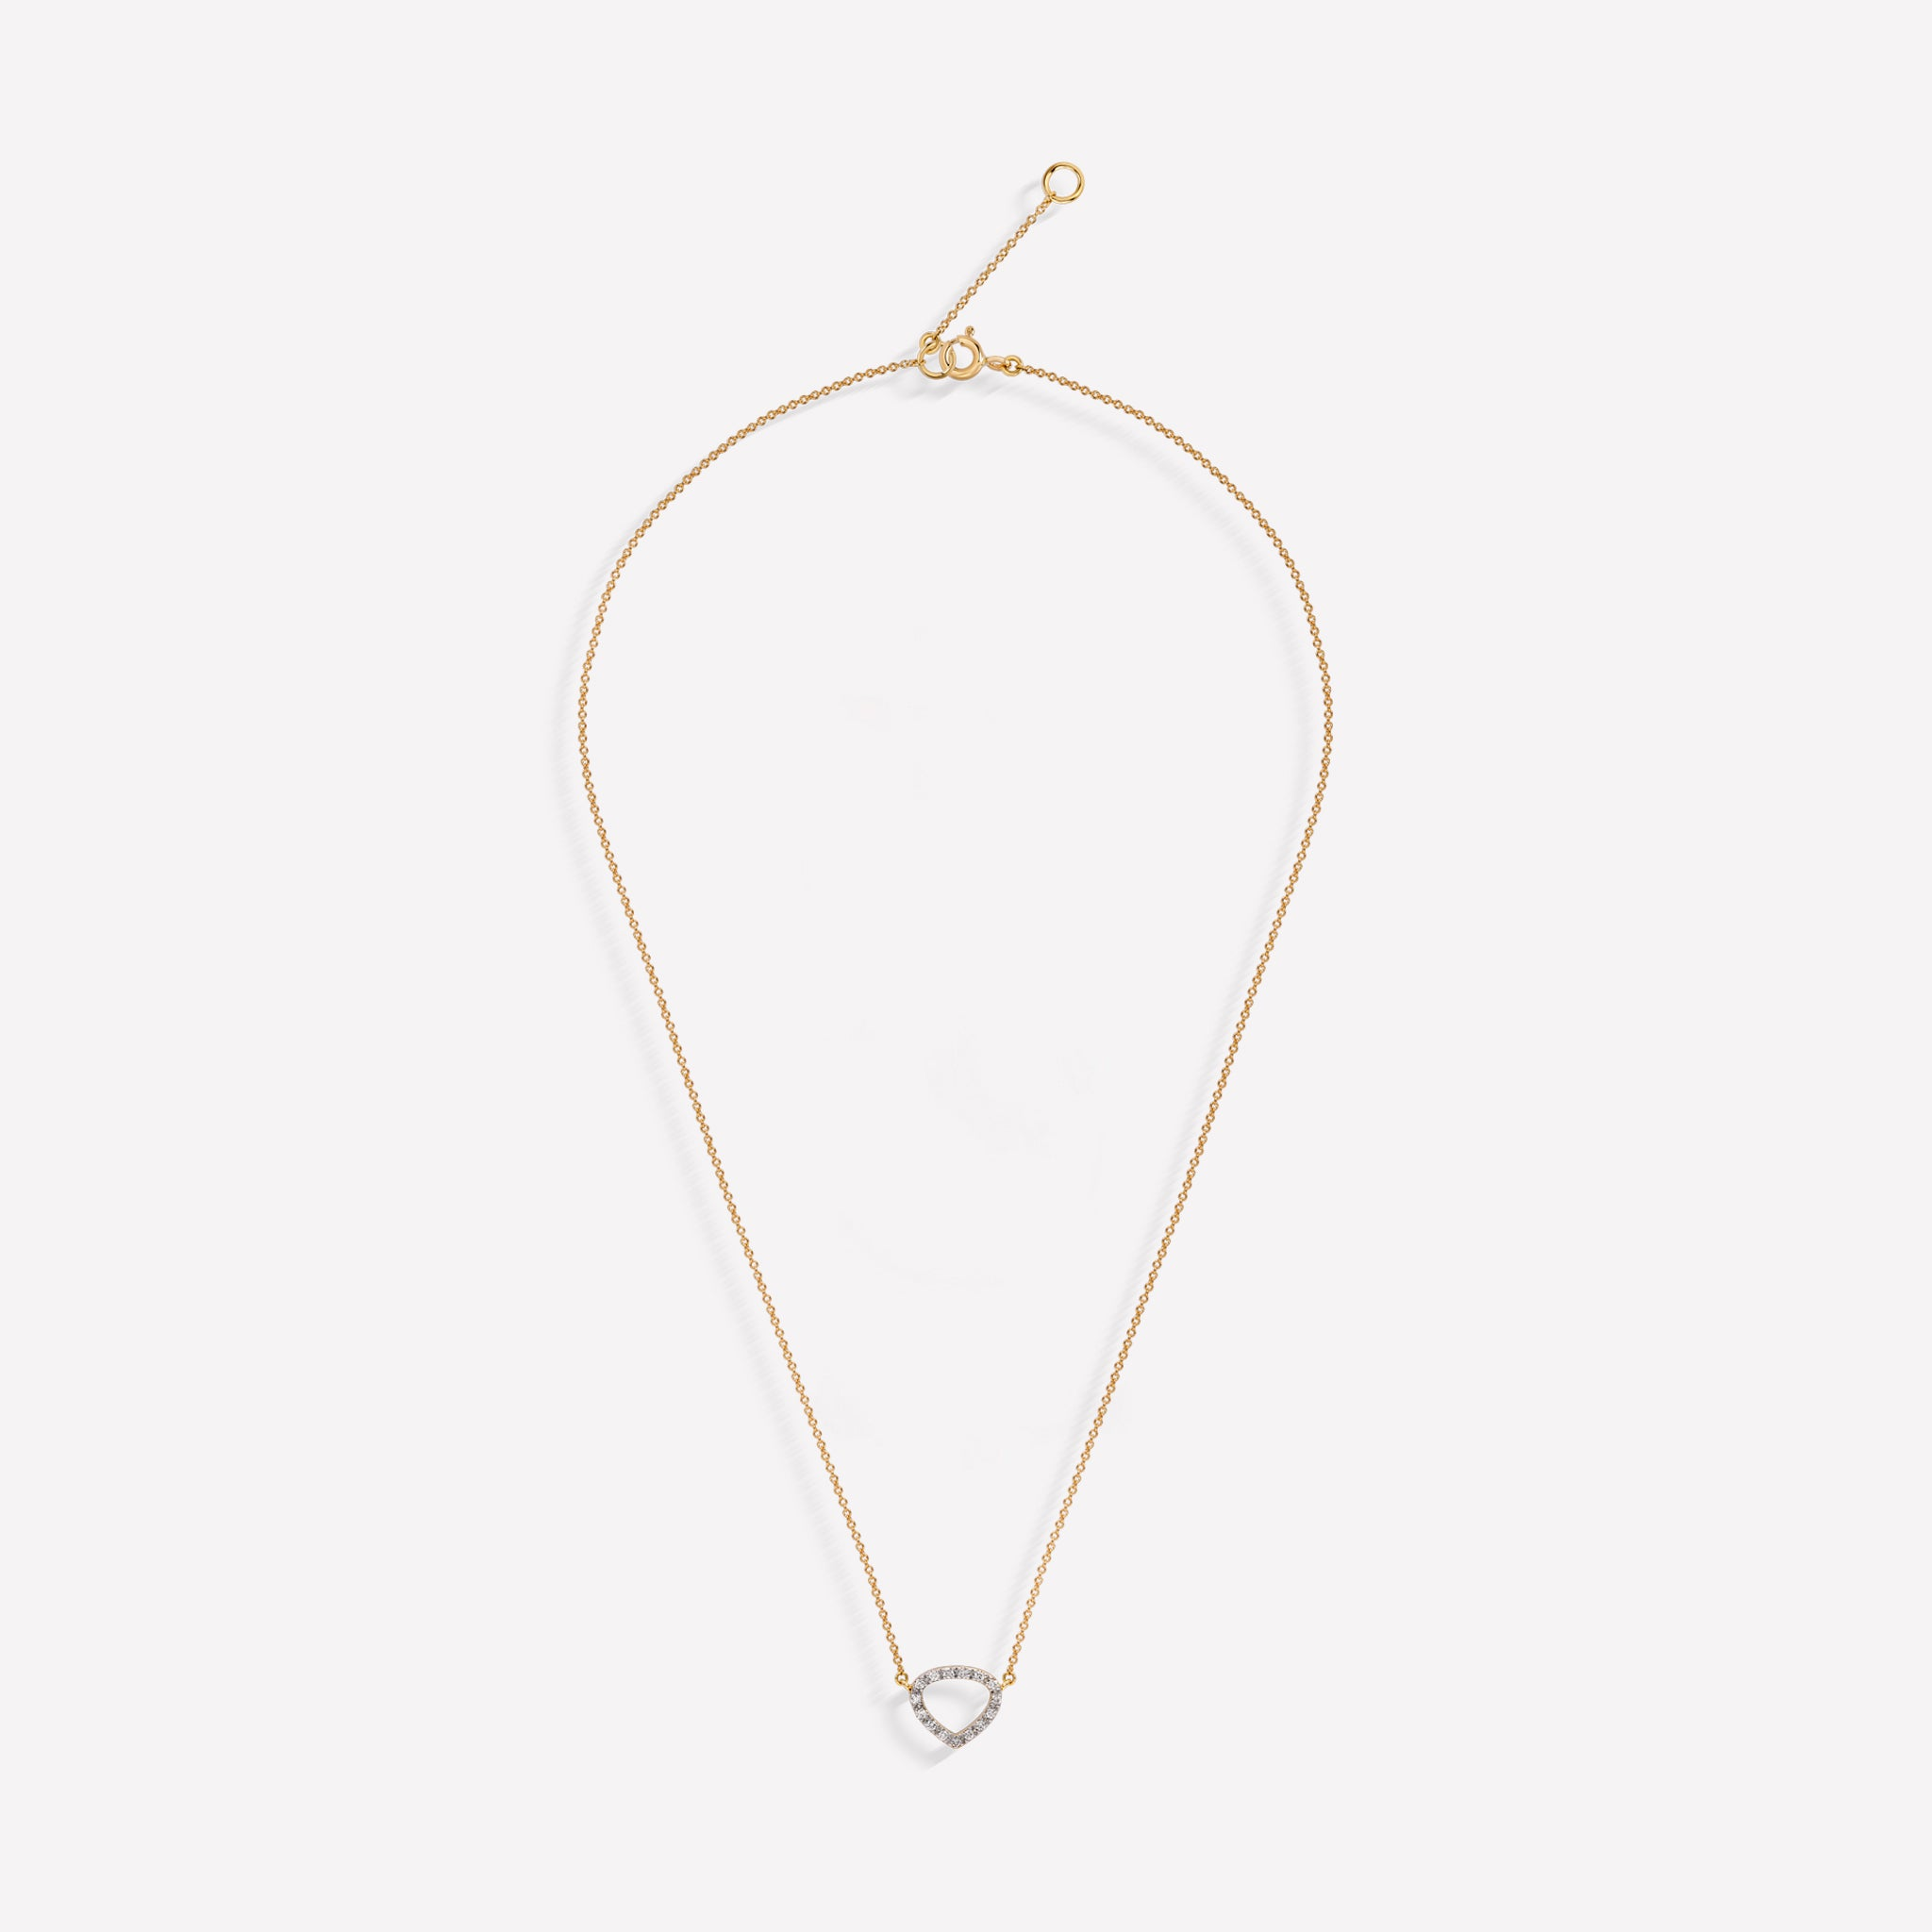 marinab.com, Trina Chain Necklace